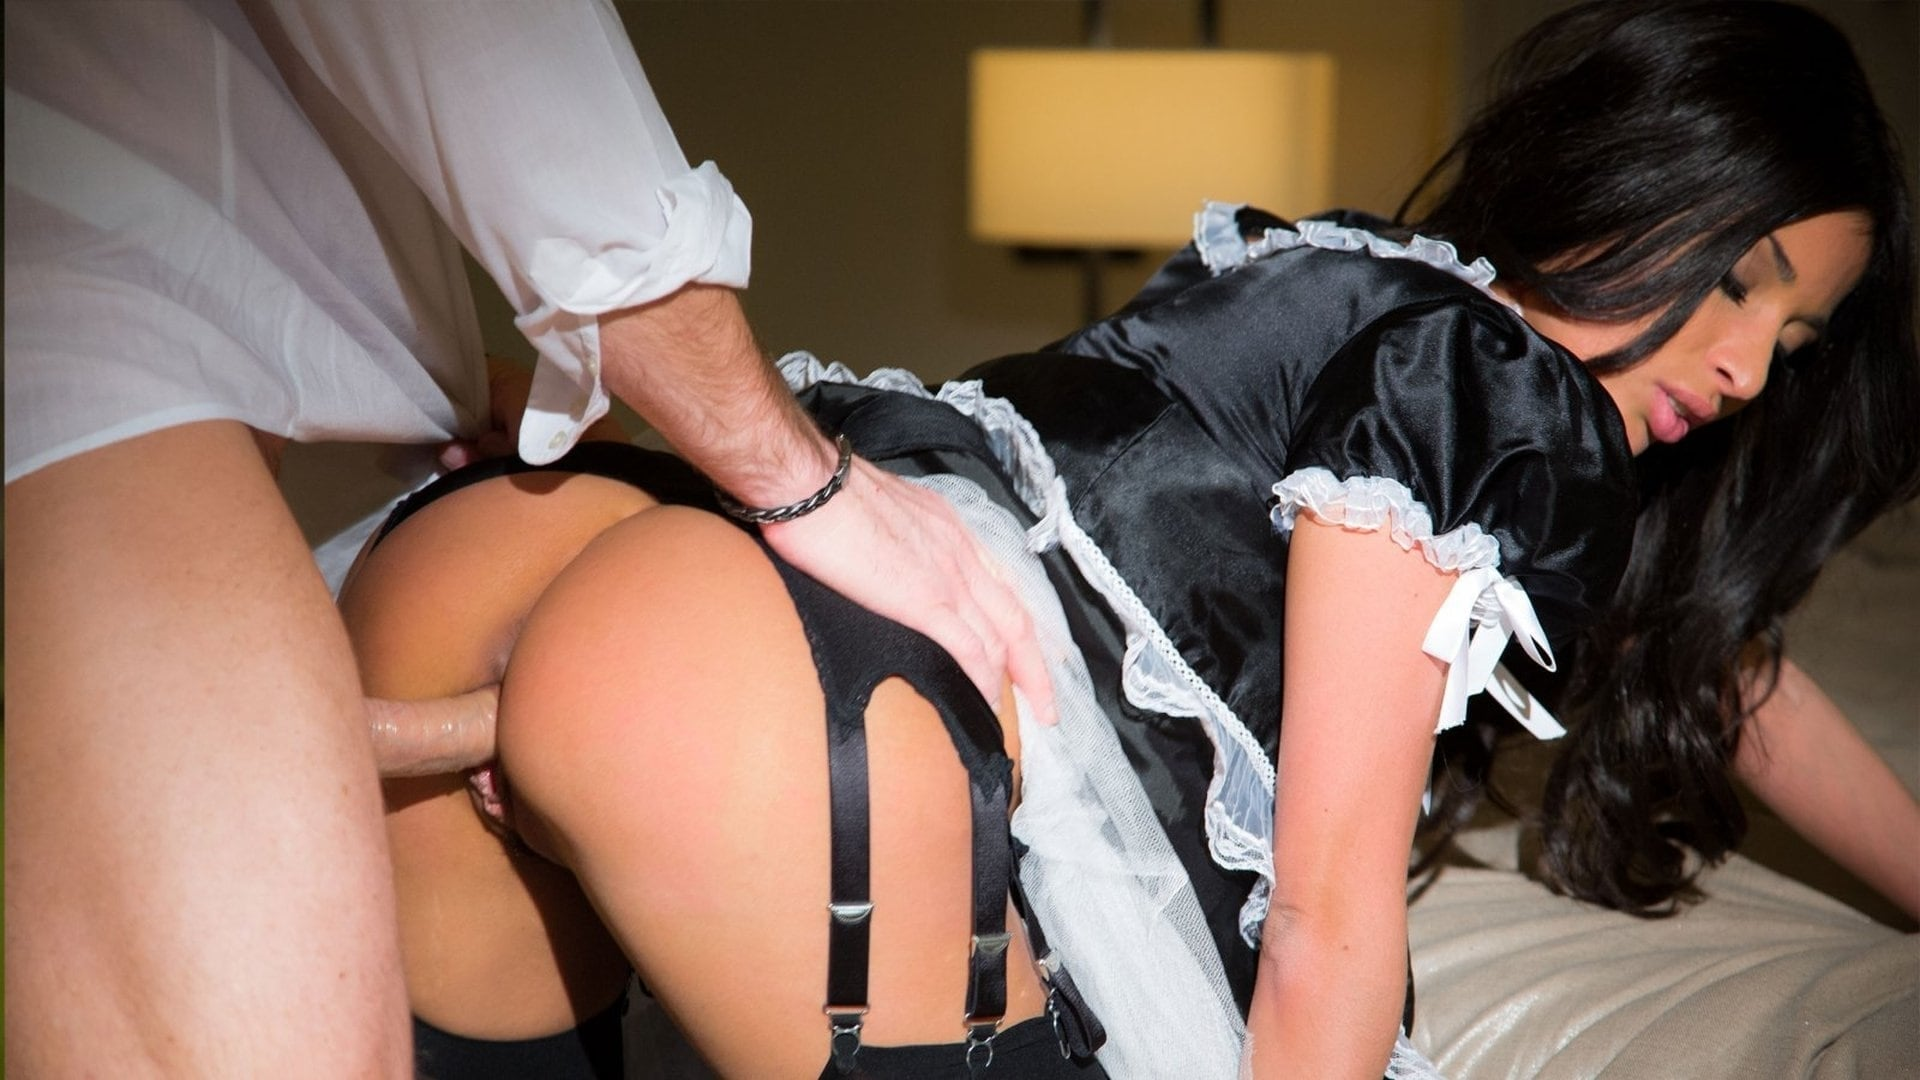 Cate harrington in a sexy french maid uniform and fishnet stockings